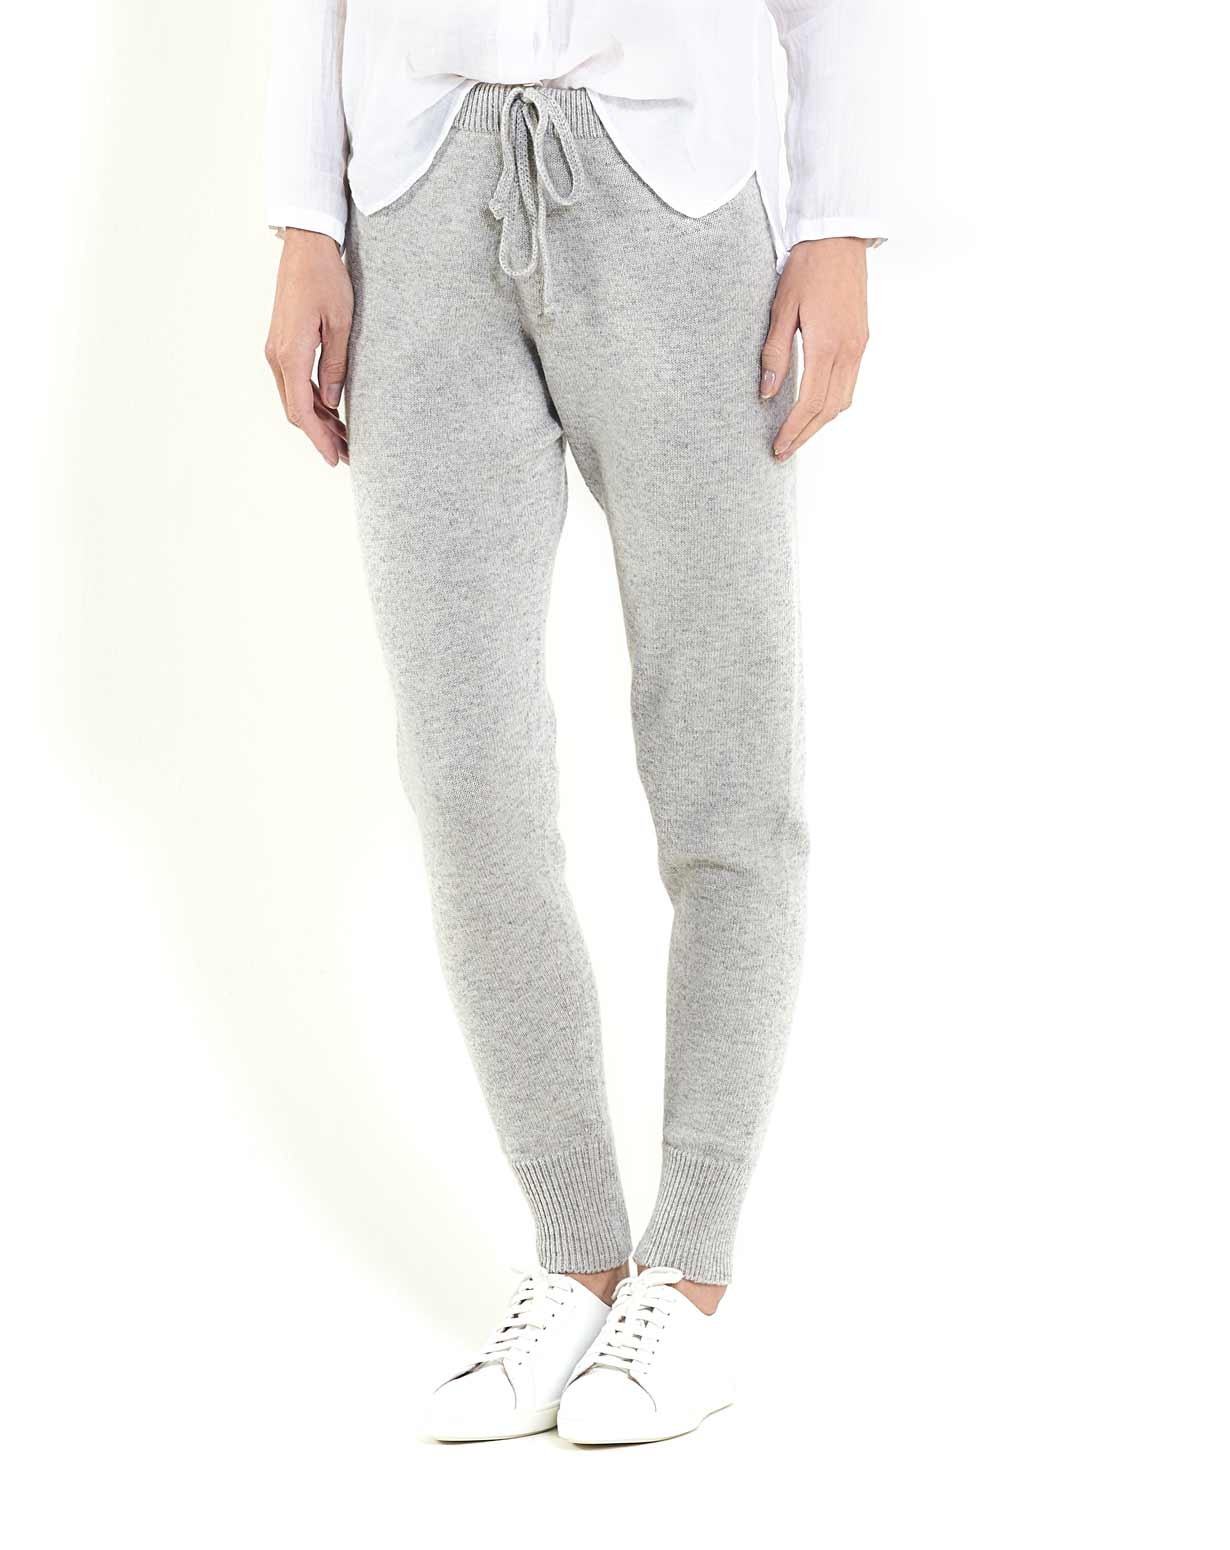 Ladies' Pure Cashmere Jogging Trousers